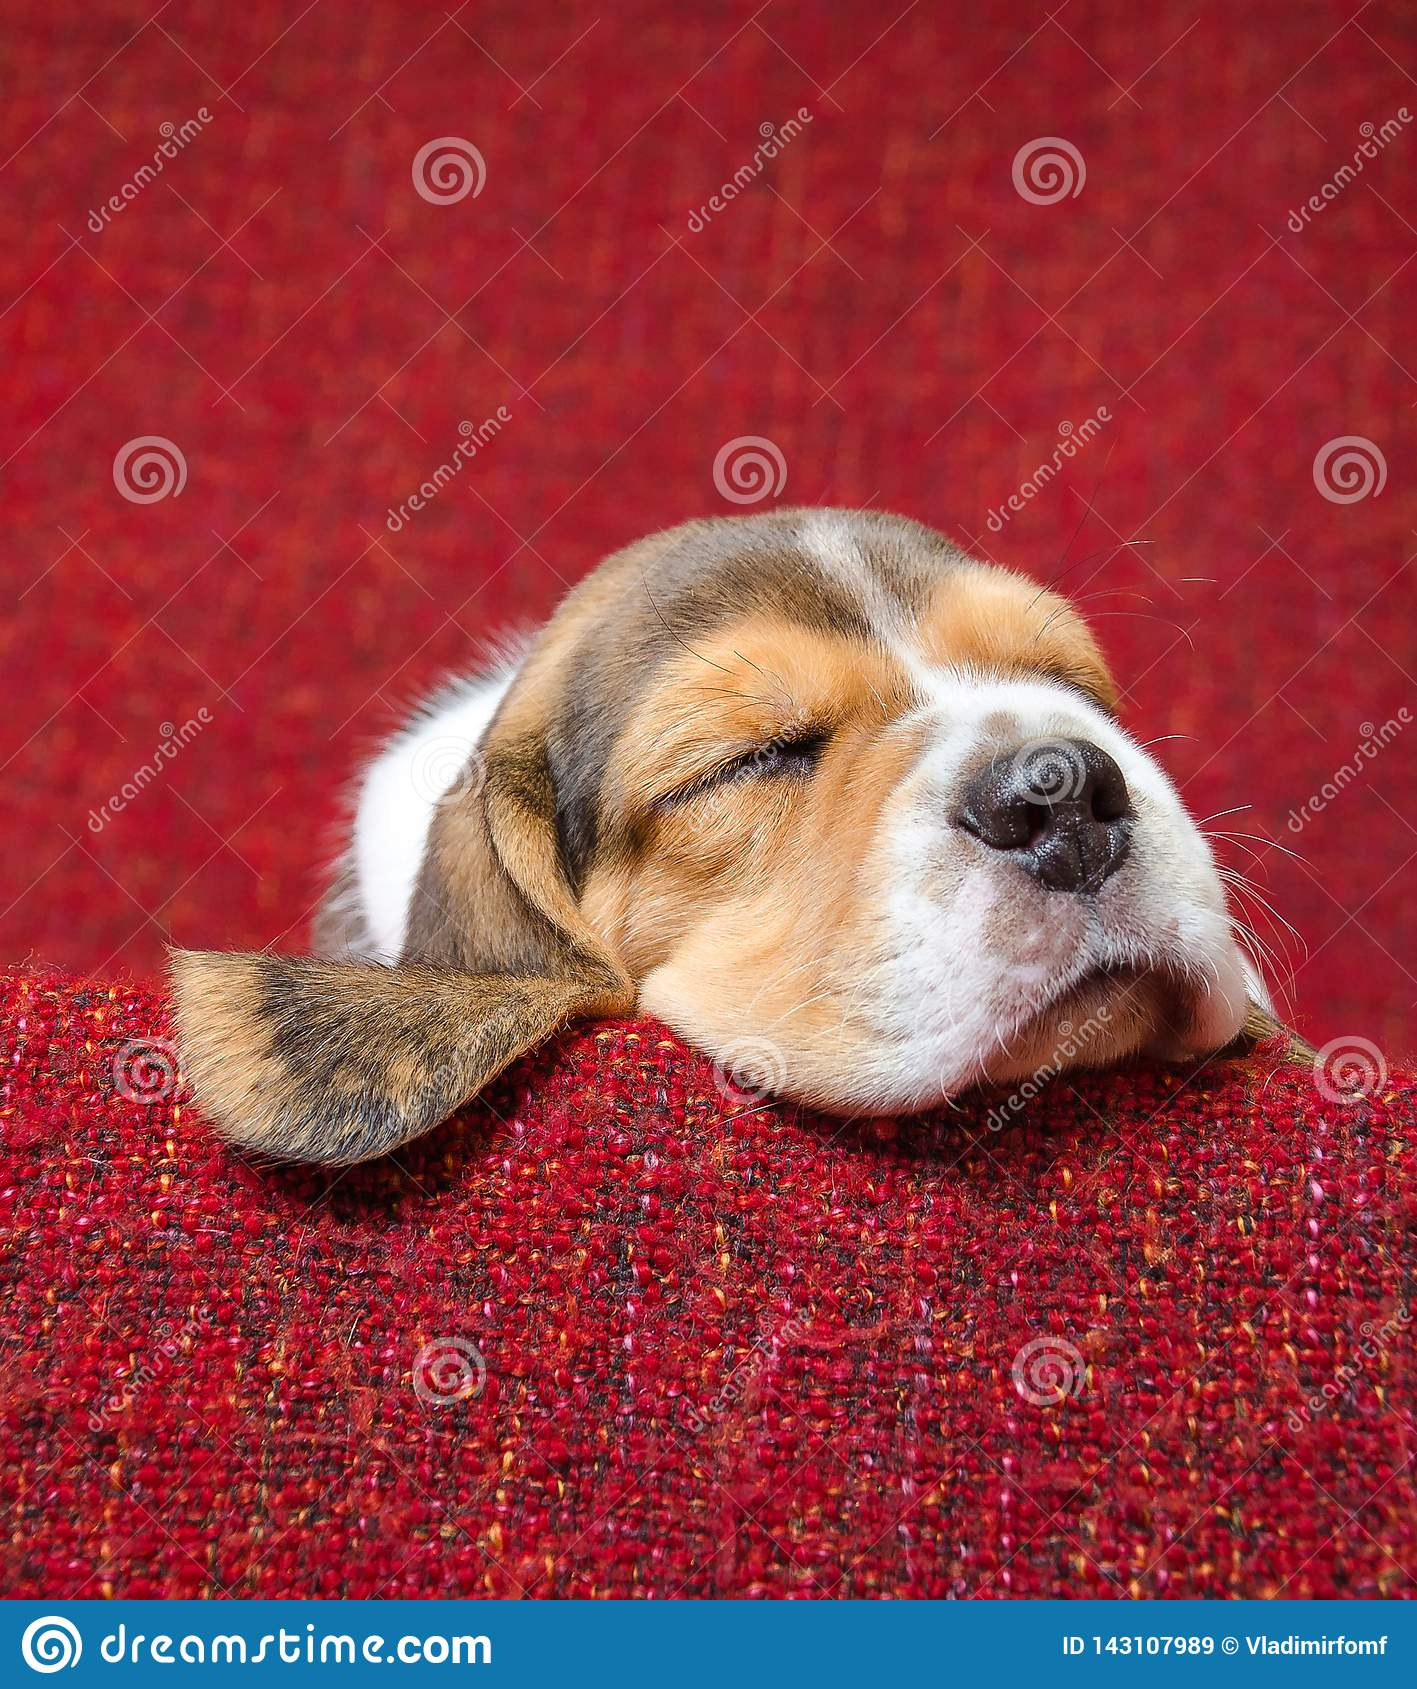 Cute beagle puppet sleeping on red blanket